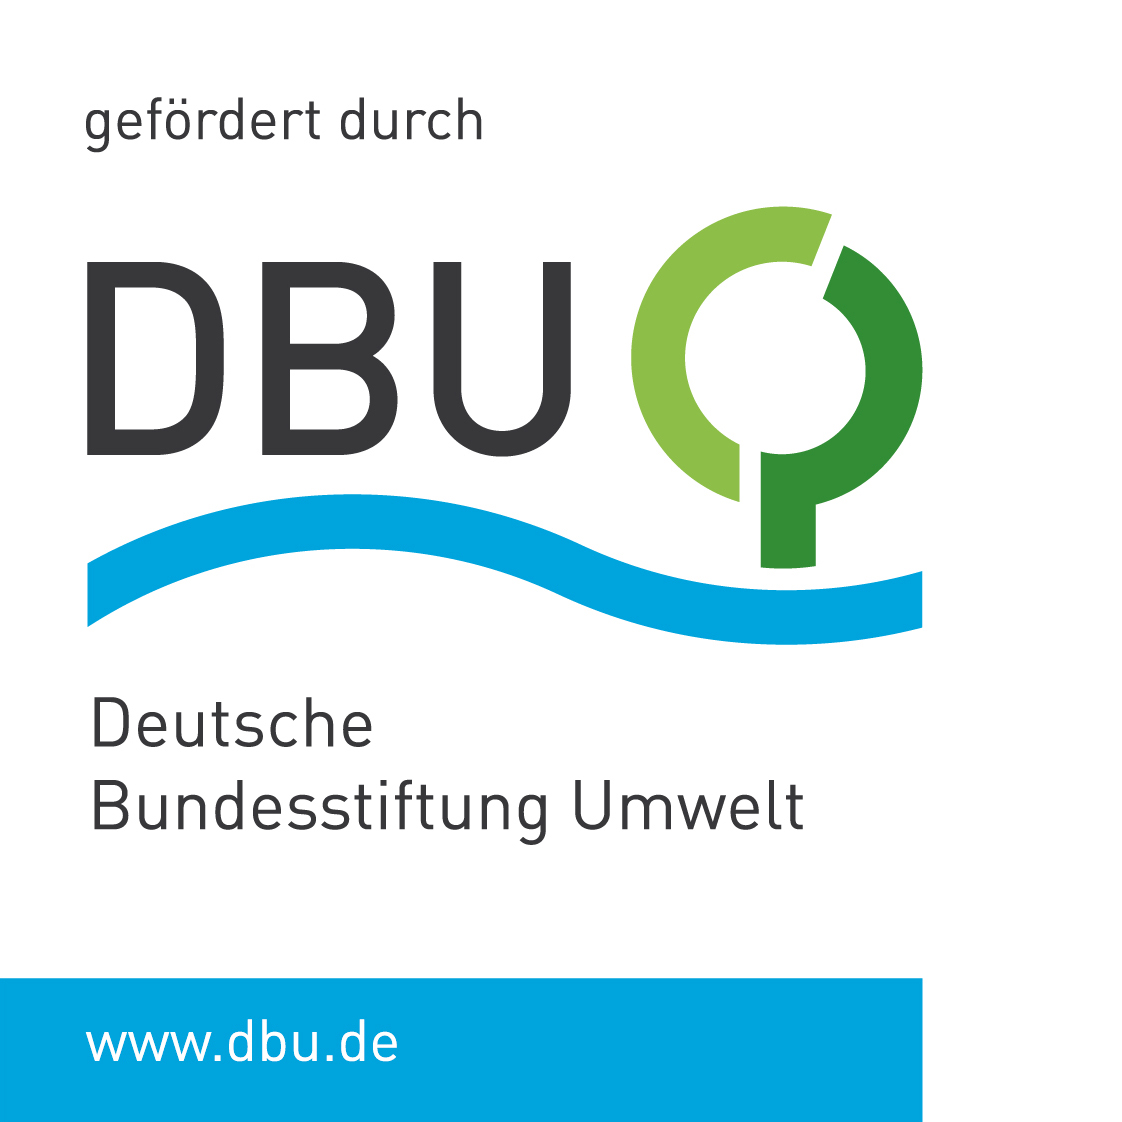 https://www.dbu.de/media/190712021139jjep.jpg